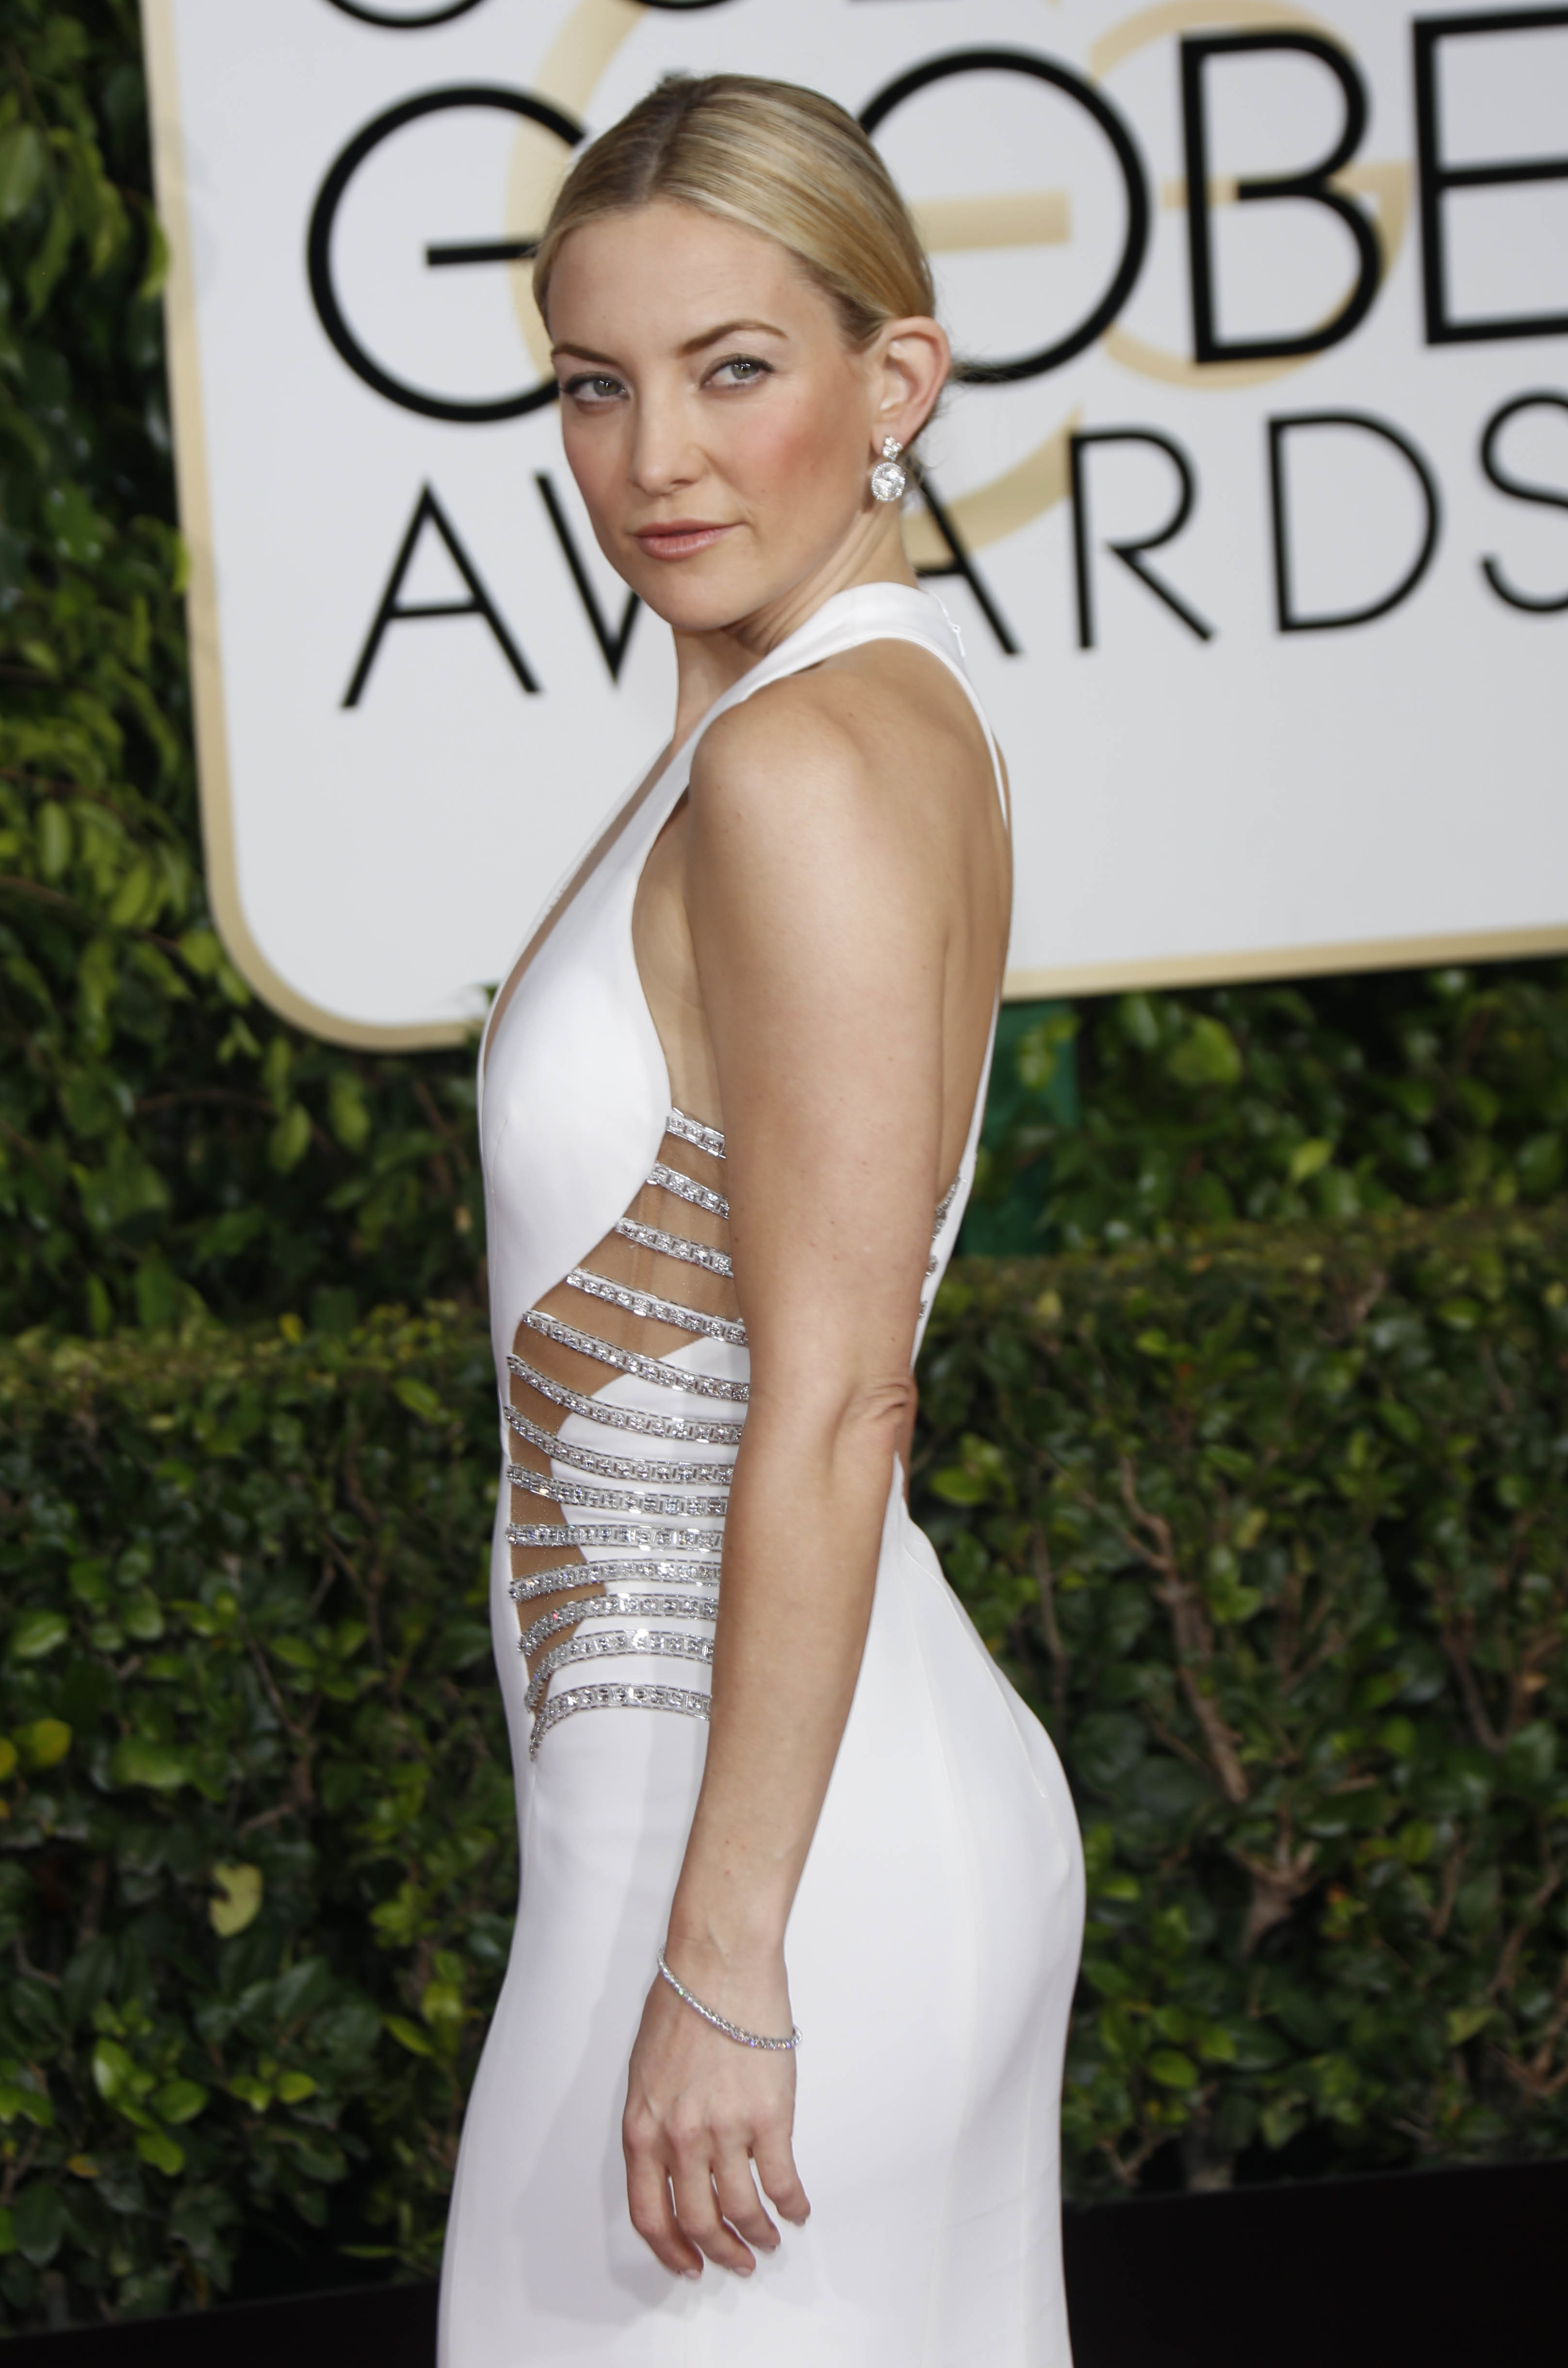 72nd Annual Golden Globe Awards at The Beverly Hilton Hotel - Arrivals Featuring: Kate Hudson Where: Los Angeles, California, United States When: 11 Jan 2015 Credit: WENN.com **Not available for publication in Germany**